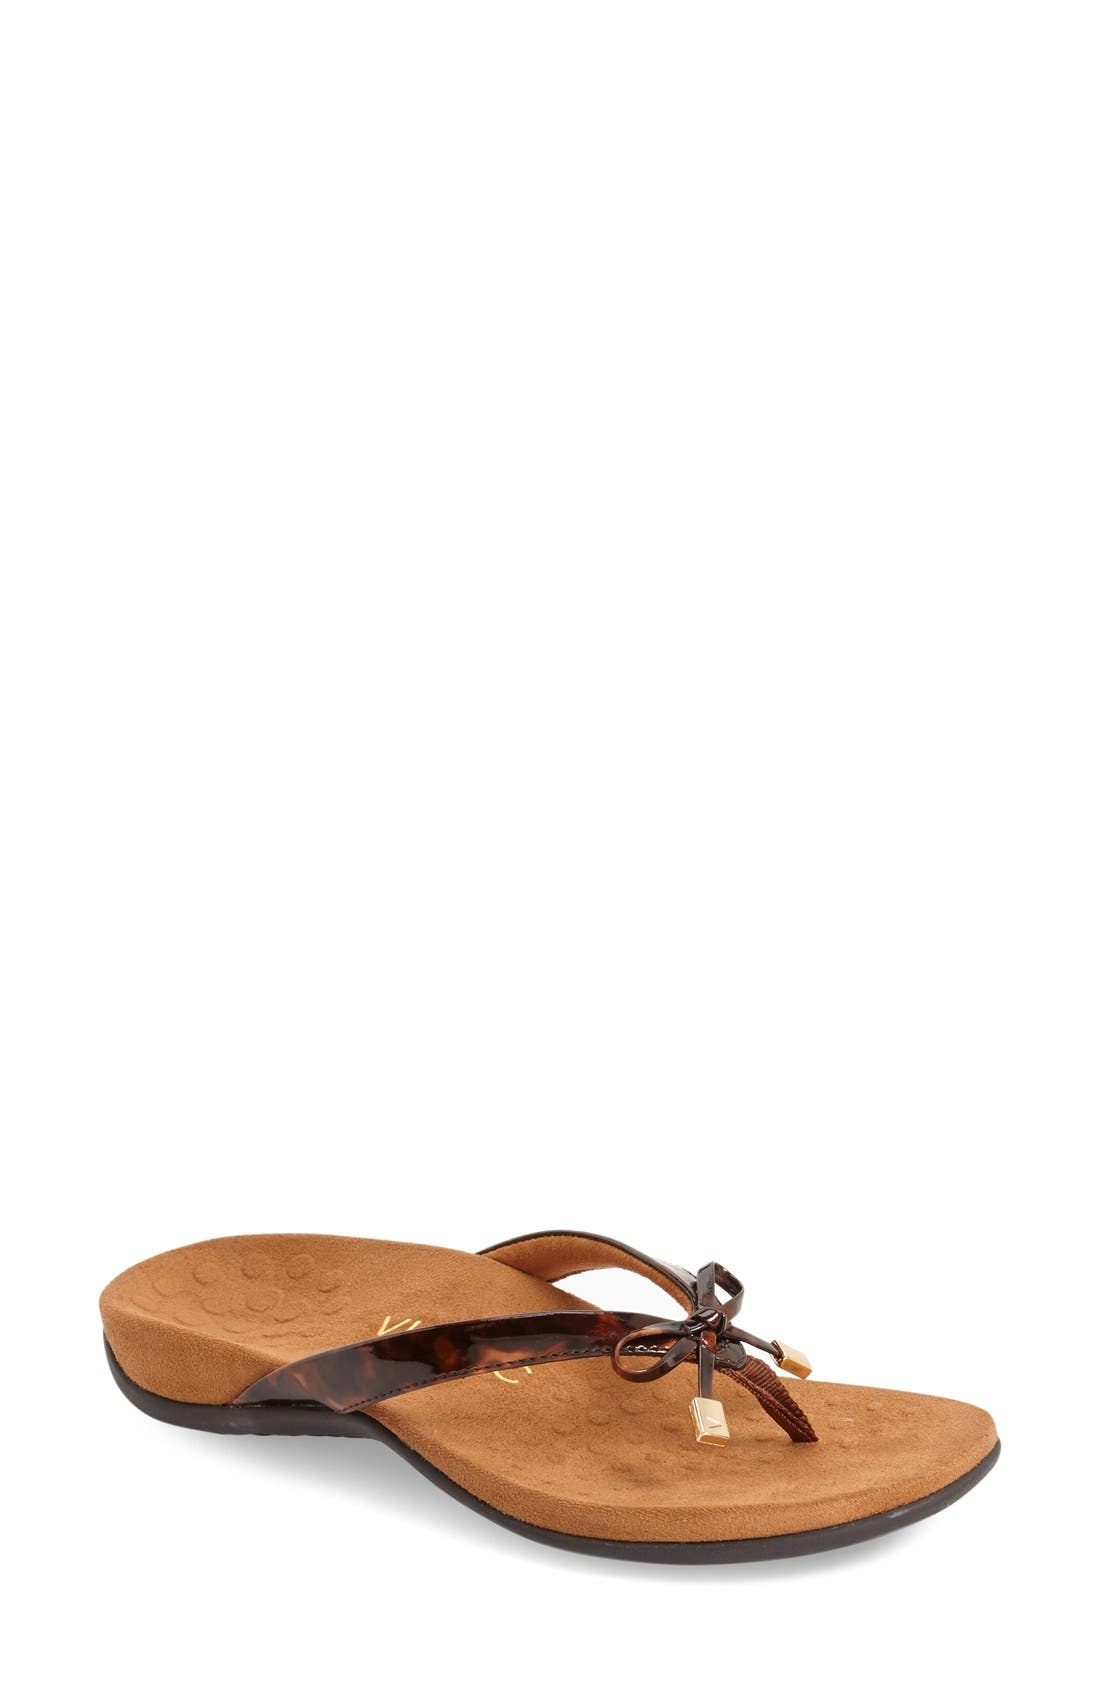 Alternate Image 1 Selected - Vionic 'Bella II' Sandal (Women)